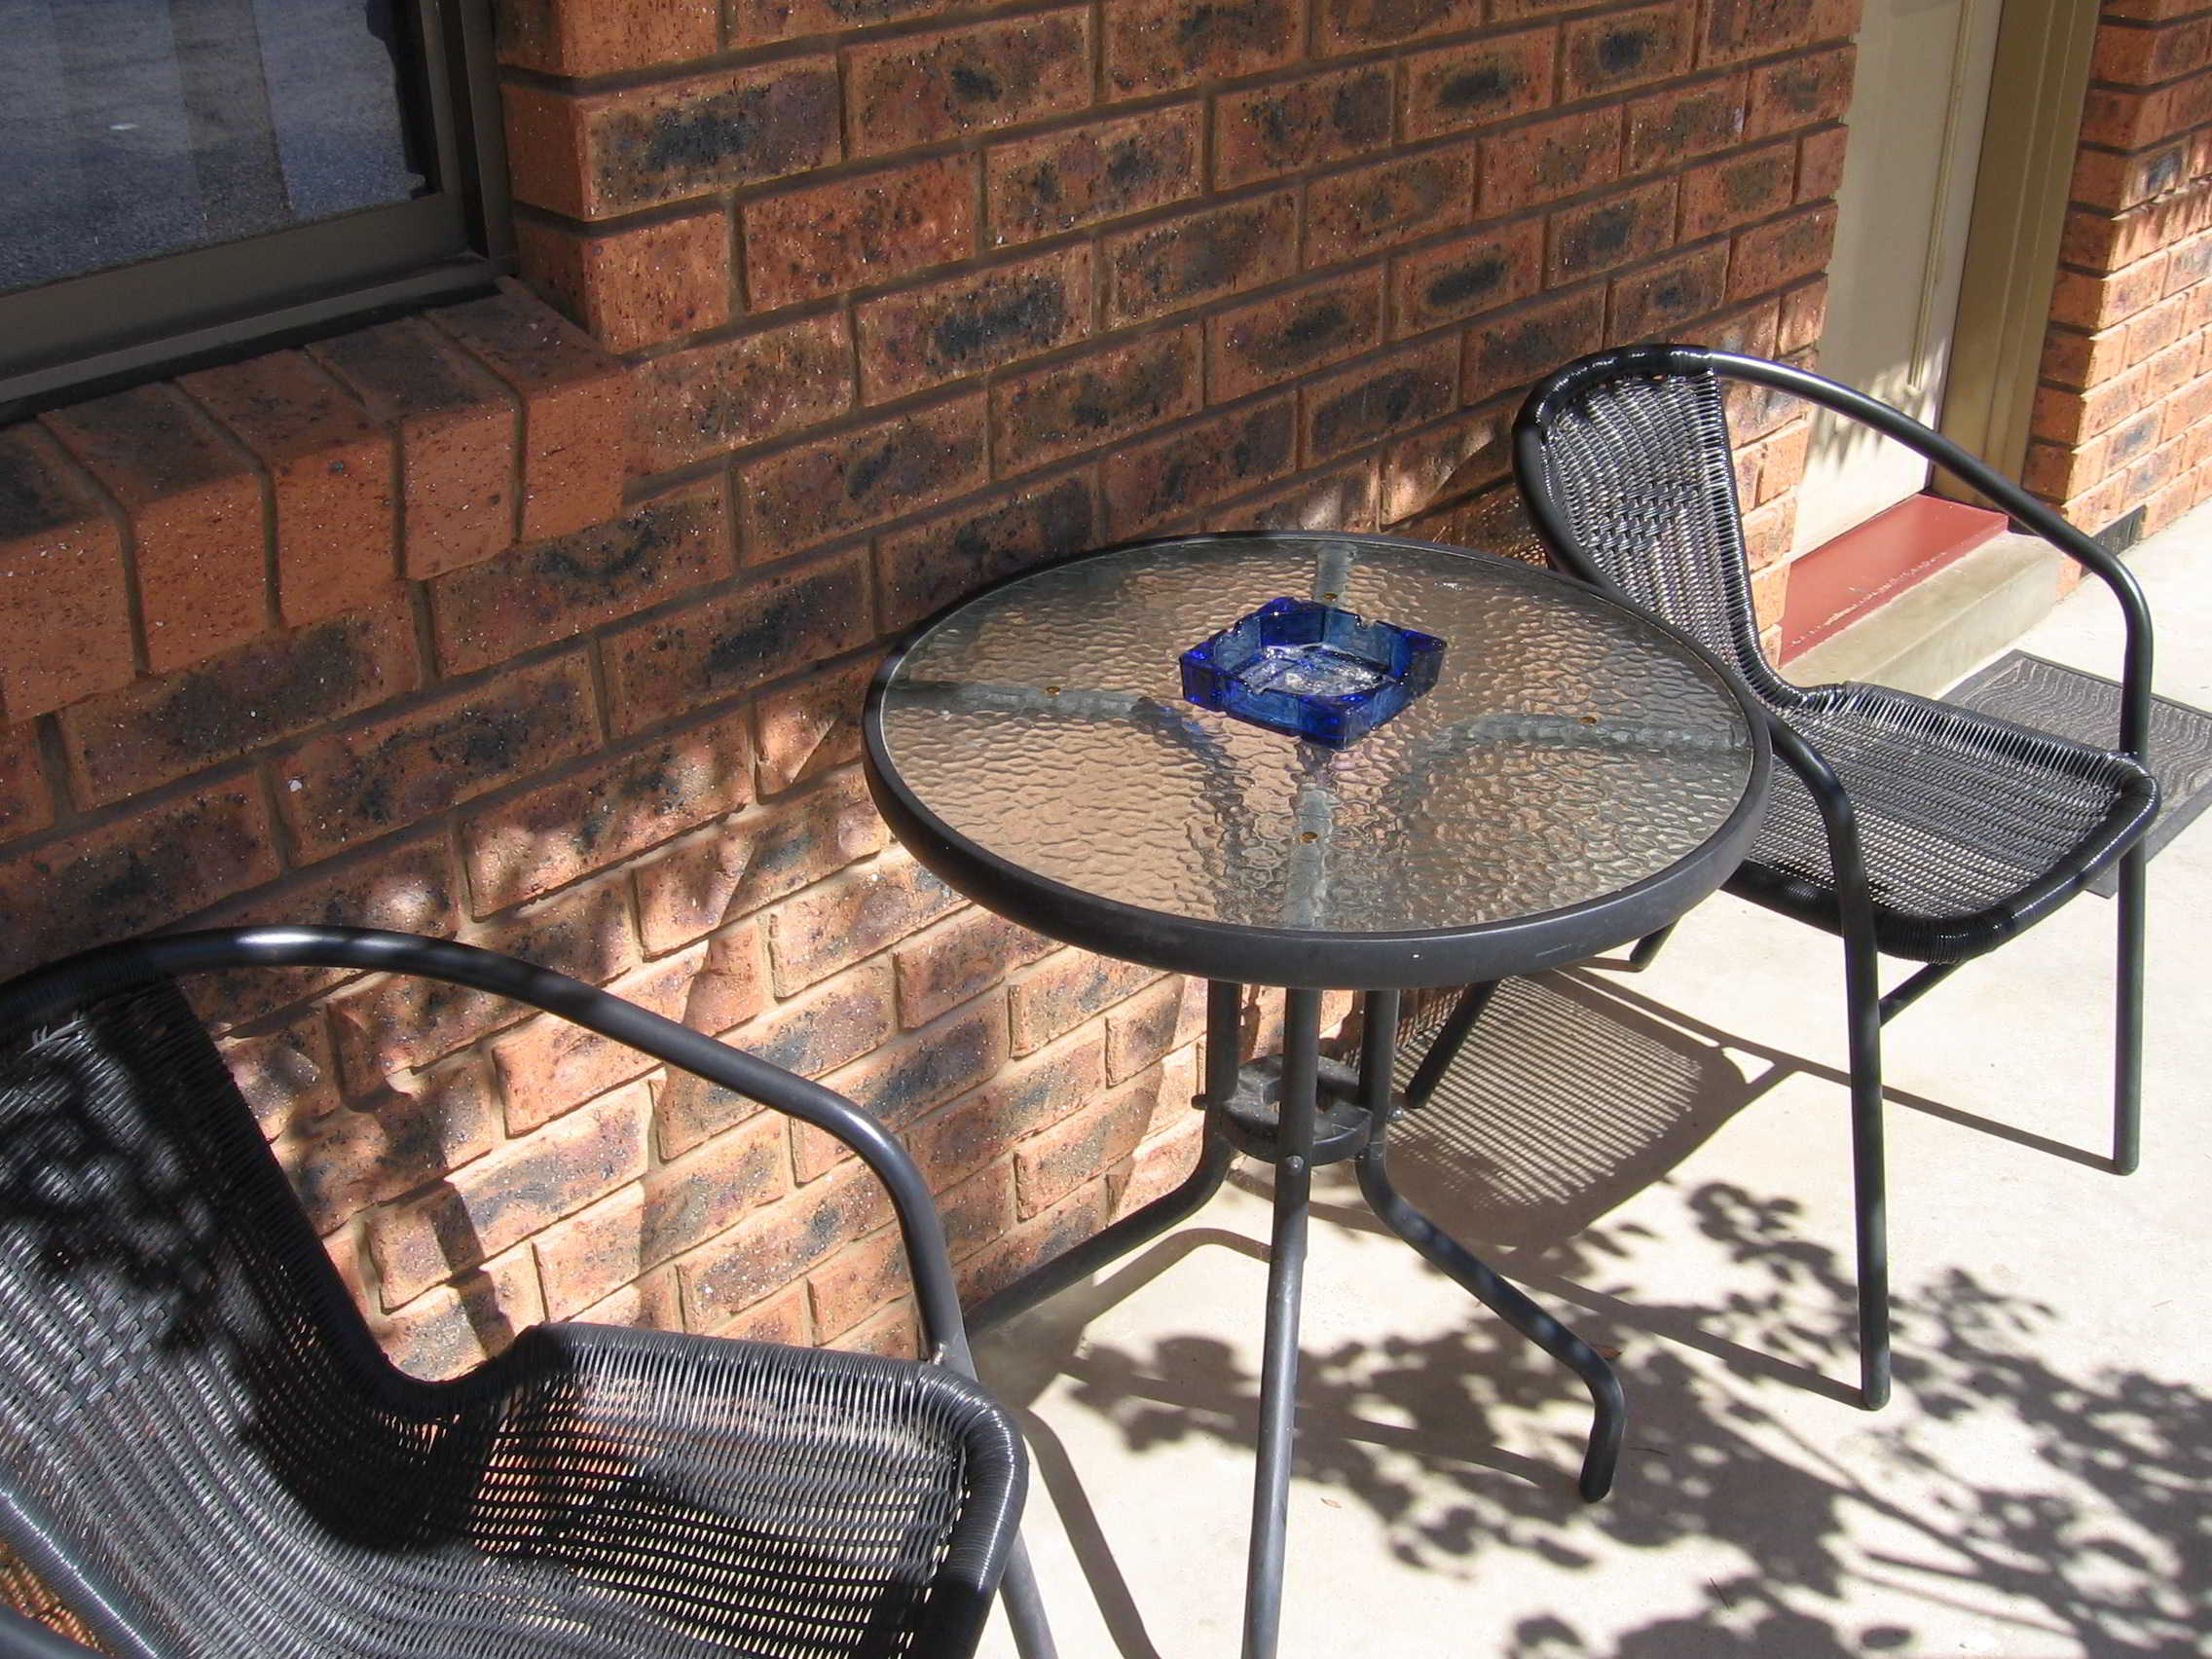 Chairs at front of motel room